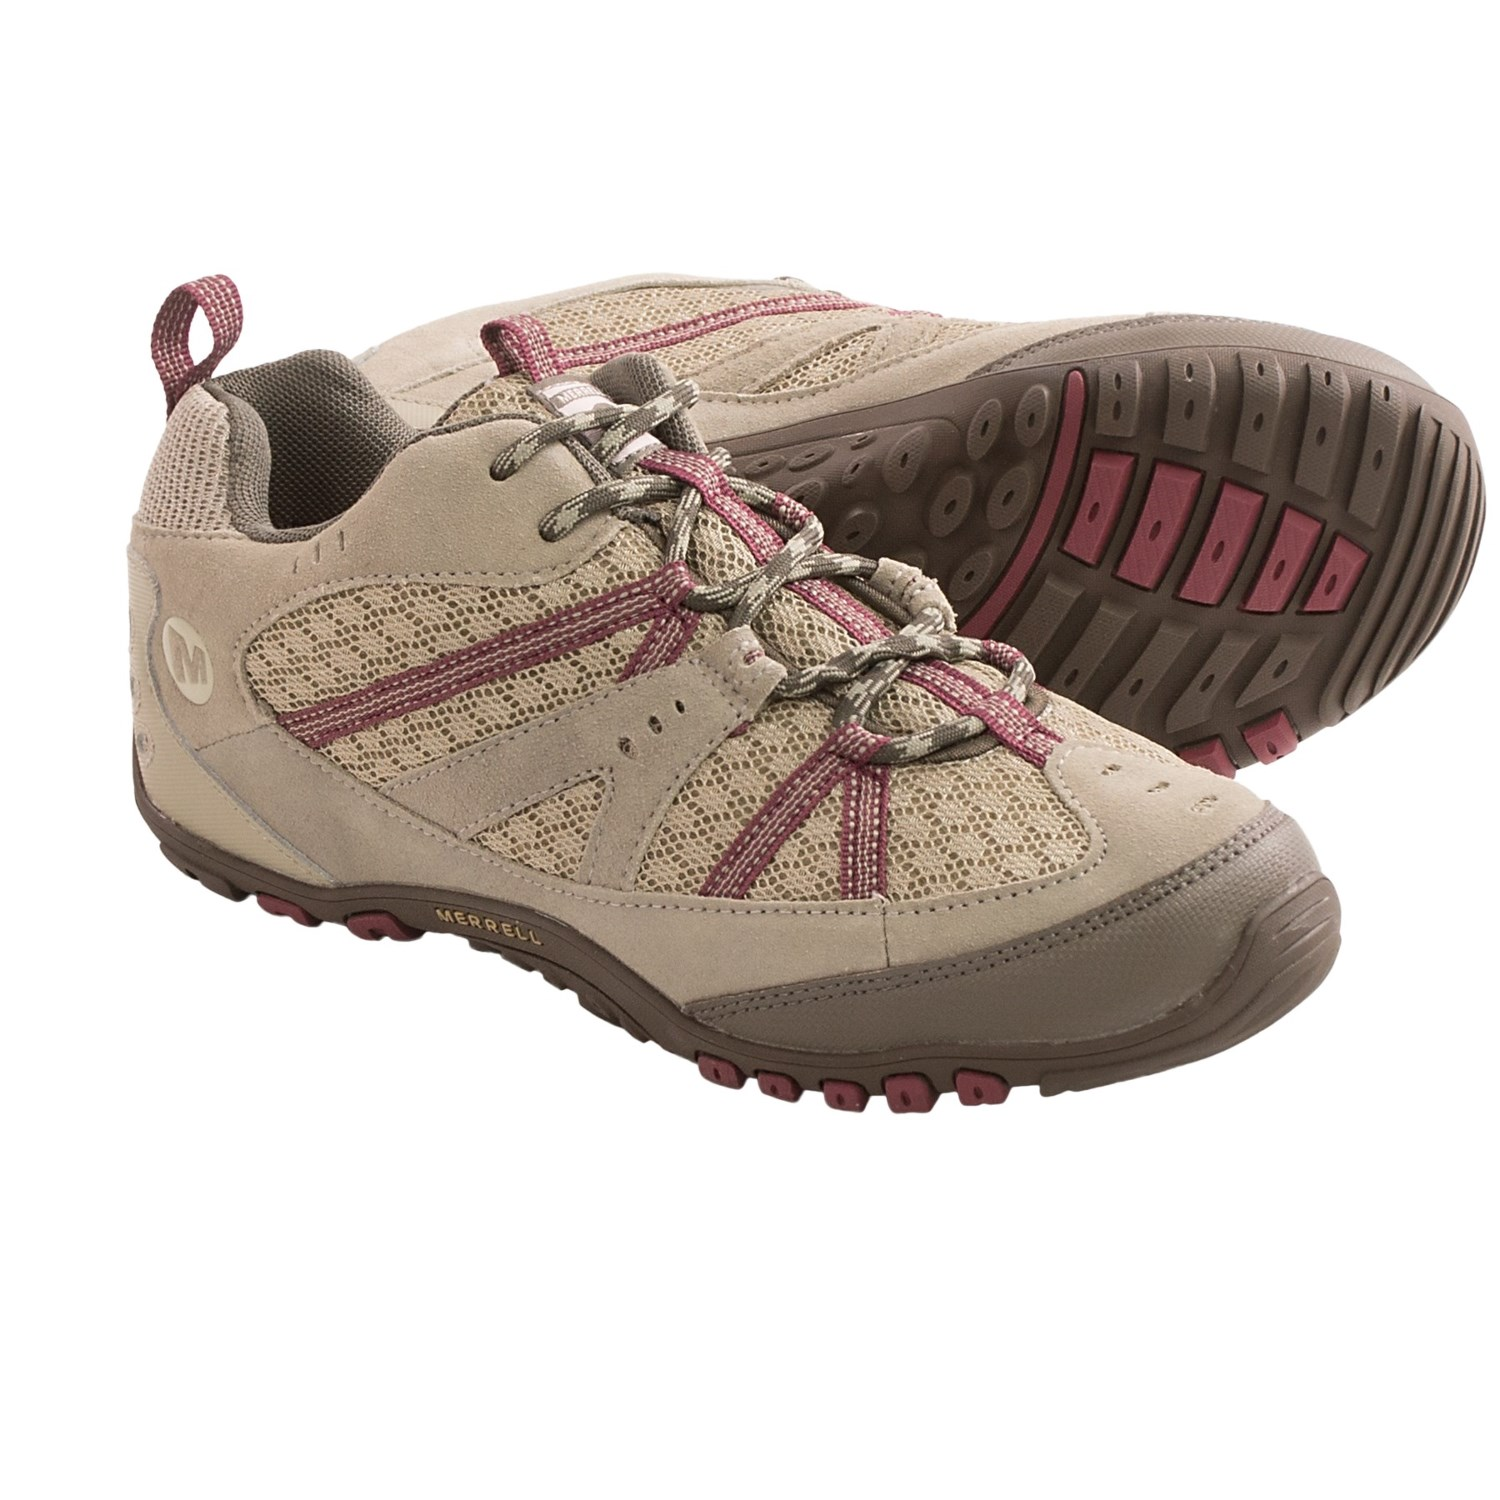 Merrell Radius Mid Waterproof Hiking Boots - Women's at REI.com